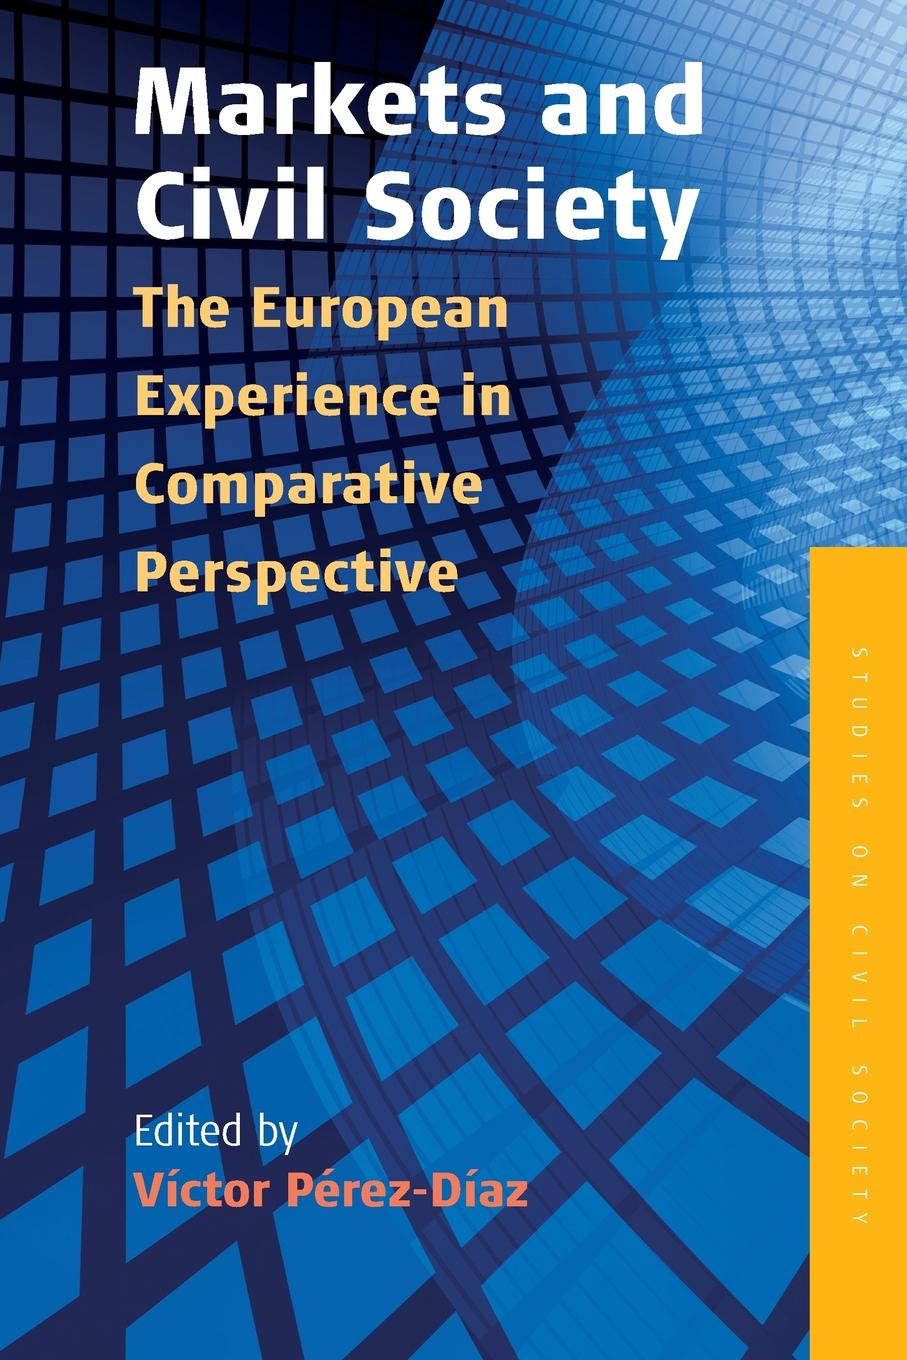 Markets and Civil Society. The European Experience in Comparative Perspective democracy and civil society in asia volume 2 democratic transitions and social movements in asia